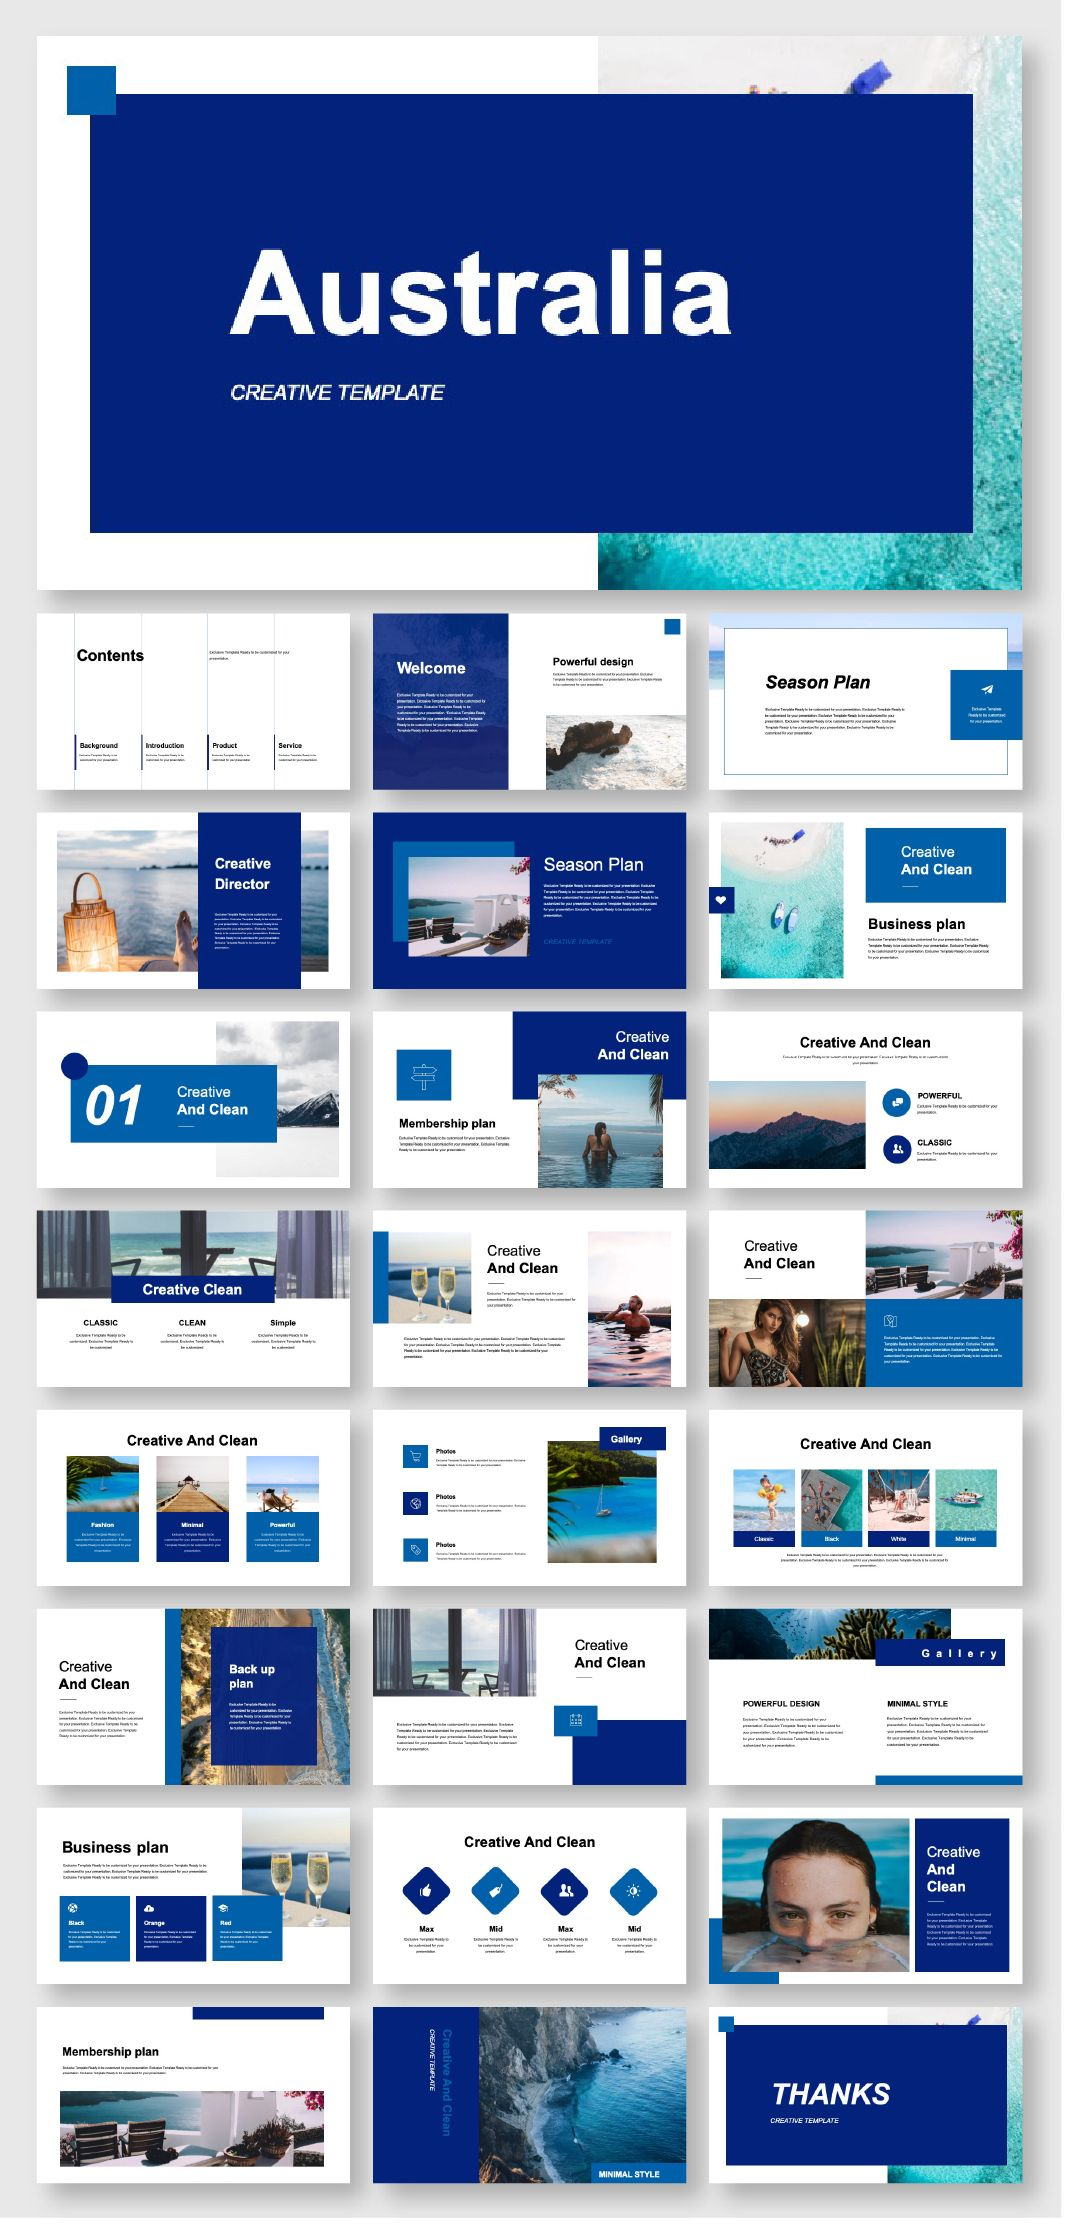 Amazing Sales Plan Presentation Template – Original and High Quality PowerPoint Templates